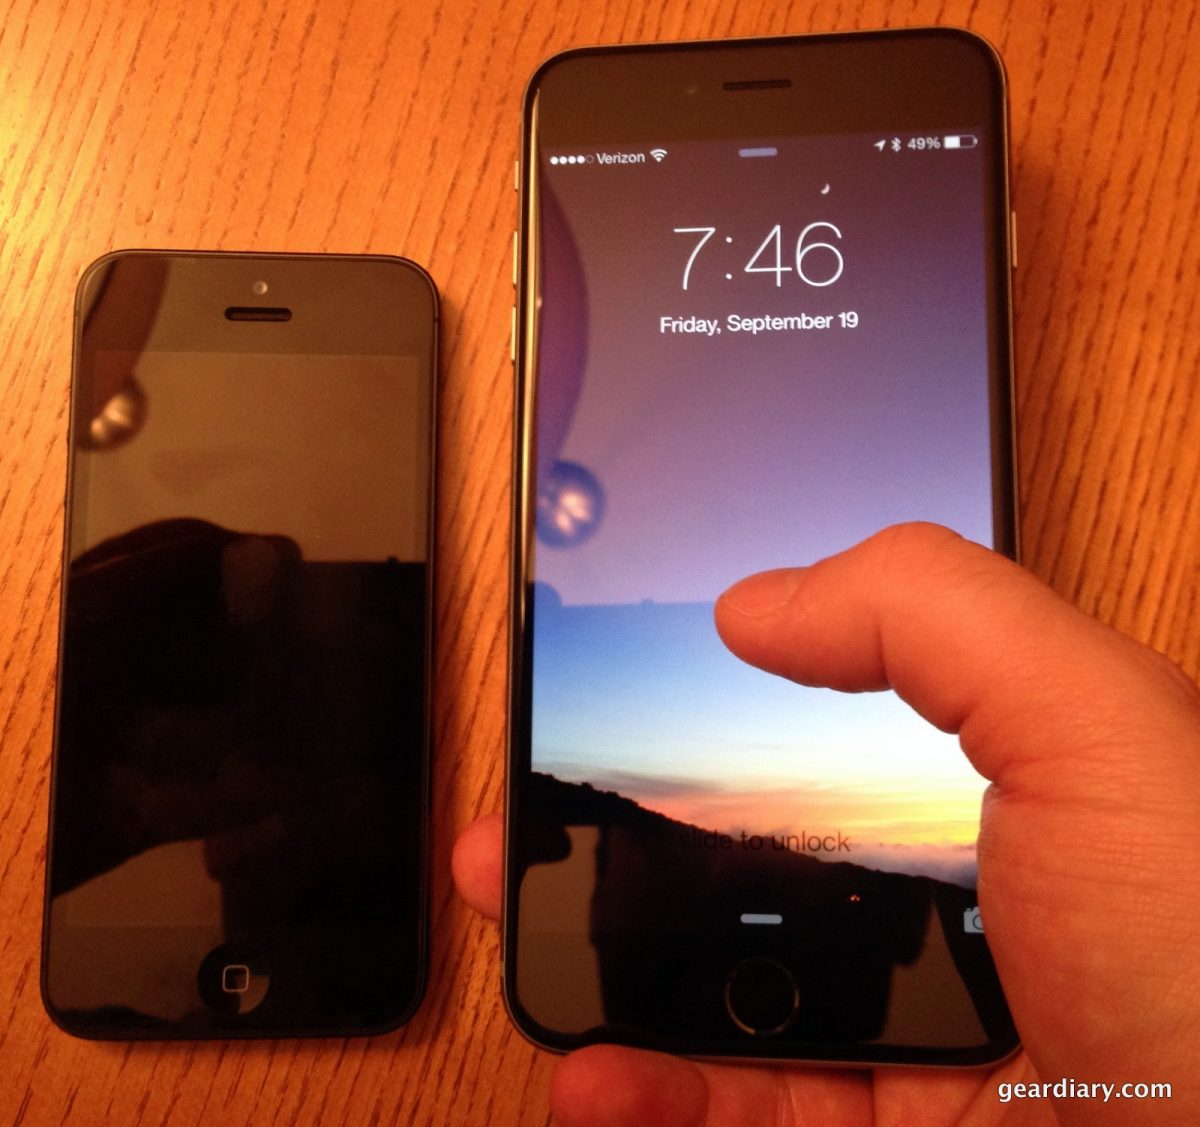 iPhone 6 Plus - First Impressions of This Mobile Goliath